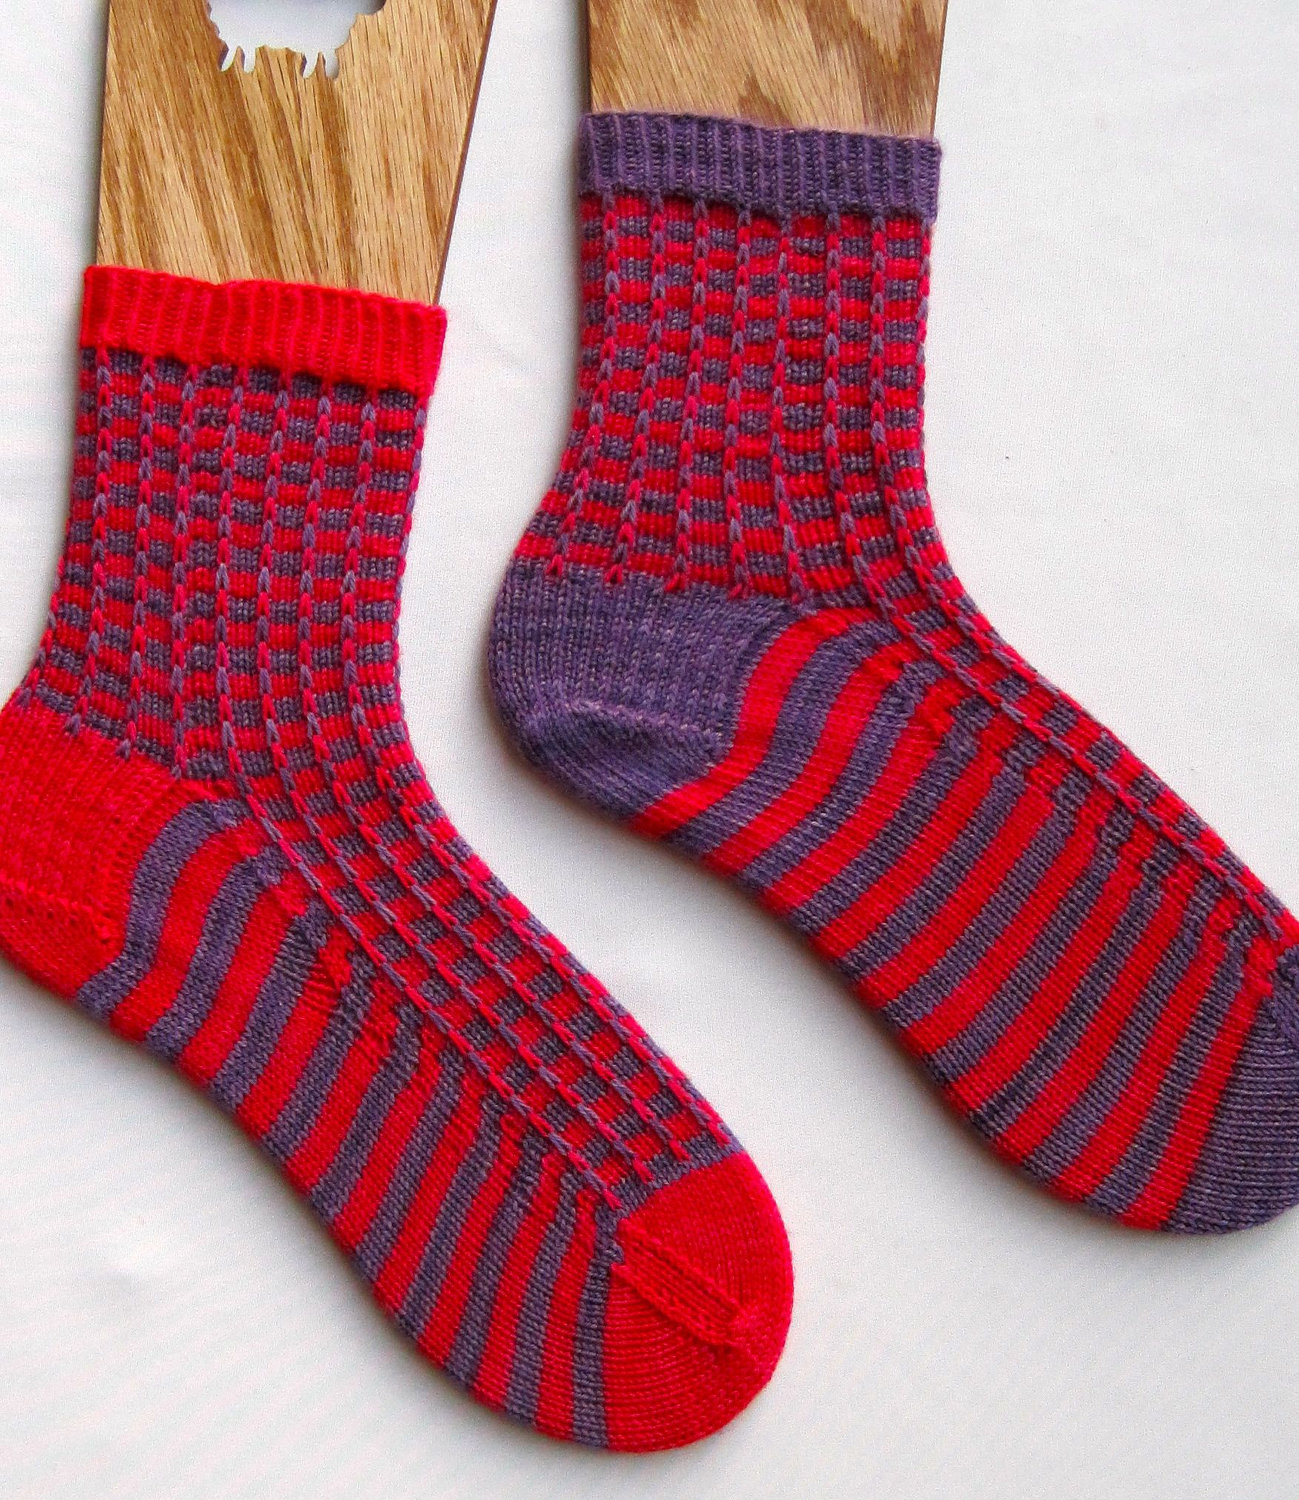 Knit Sock Pattern: Two Color Mismatched Socks Knitting